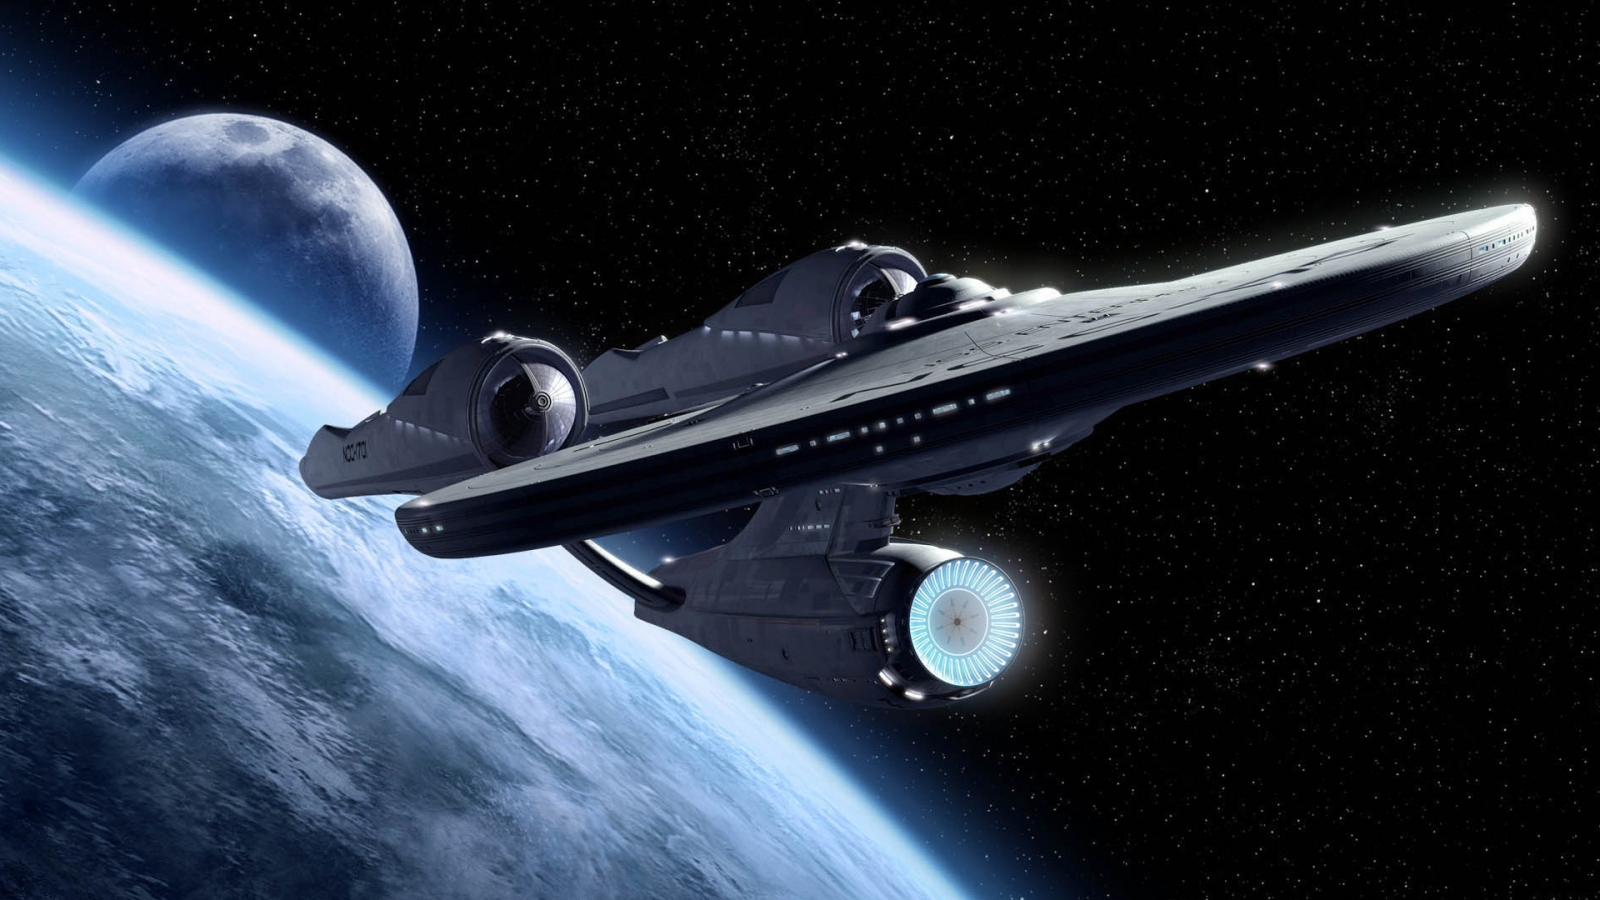 Star Trek Enterprise uses warp drive